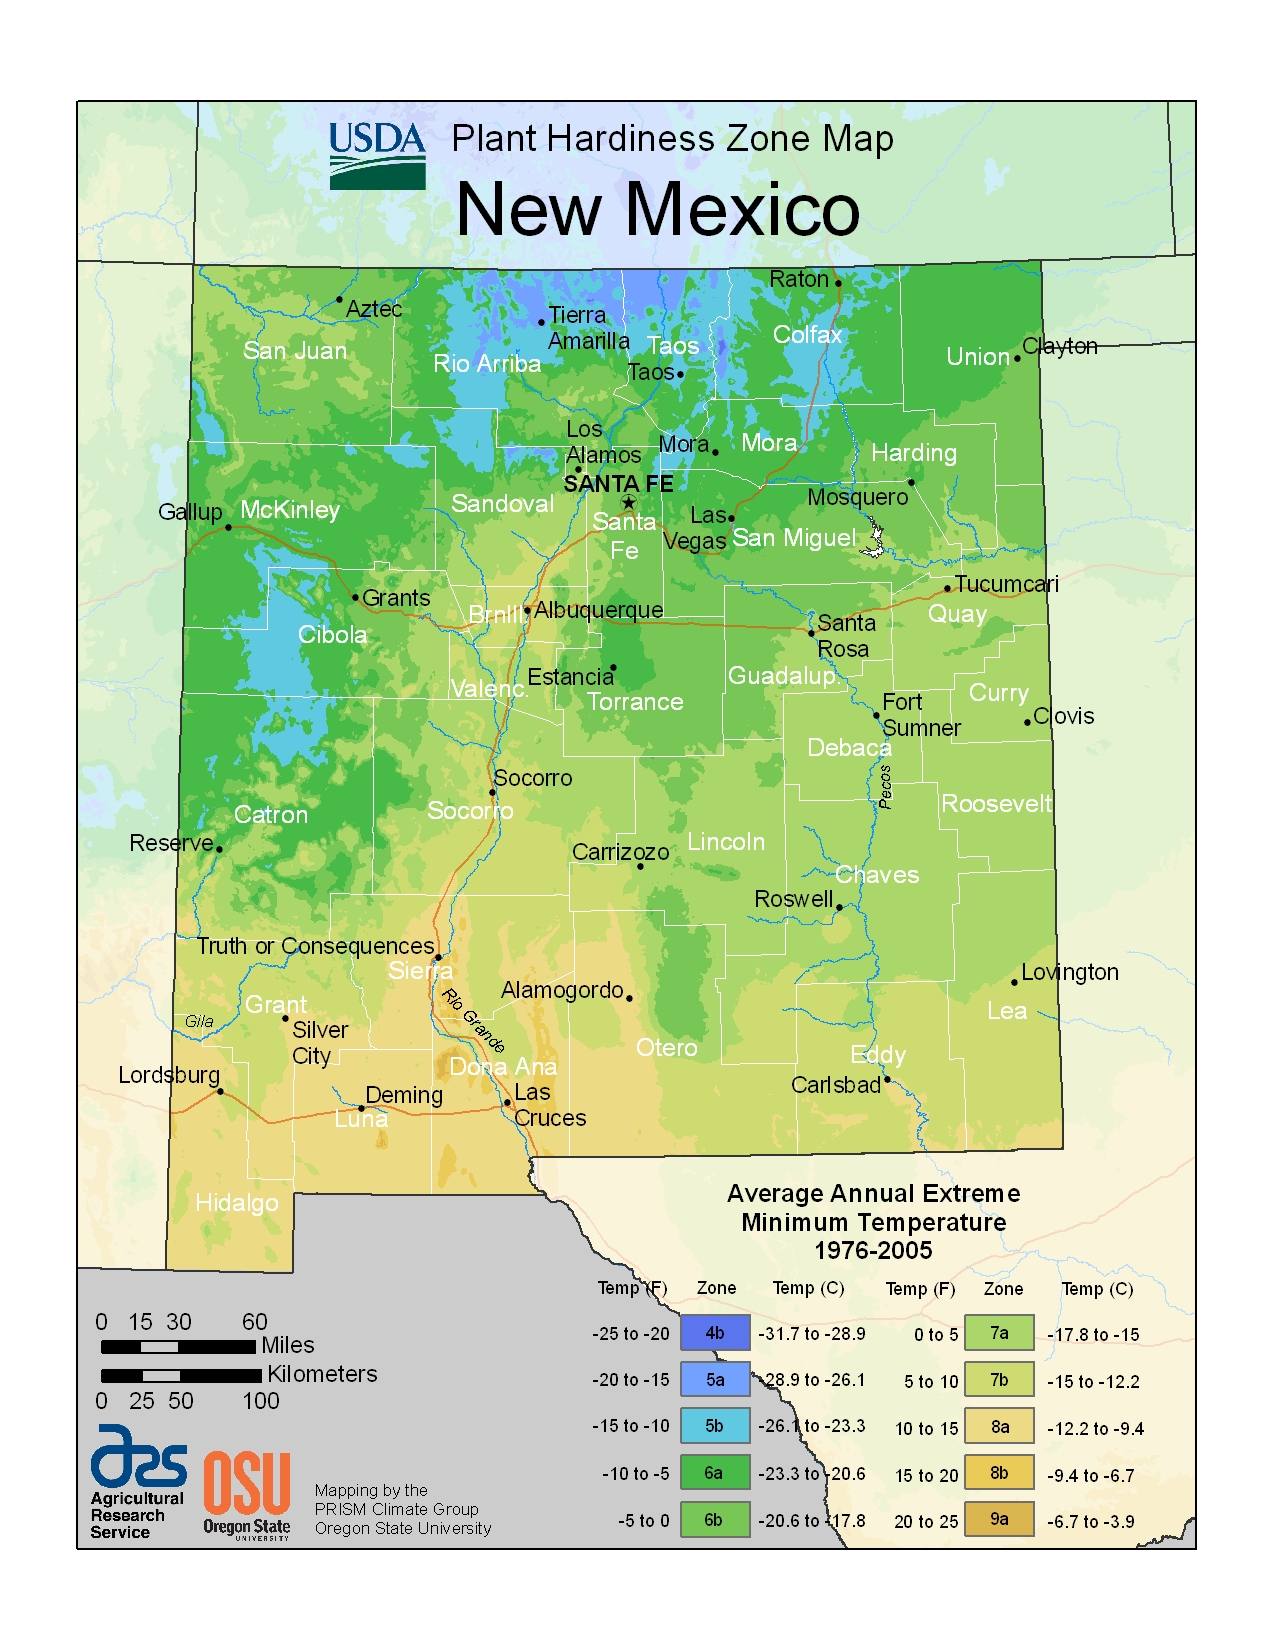 New Mexico USDA Plant Hardiness Zone Map